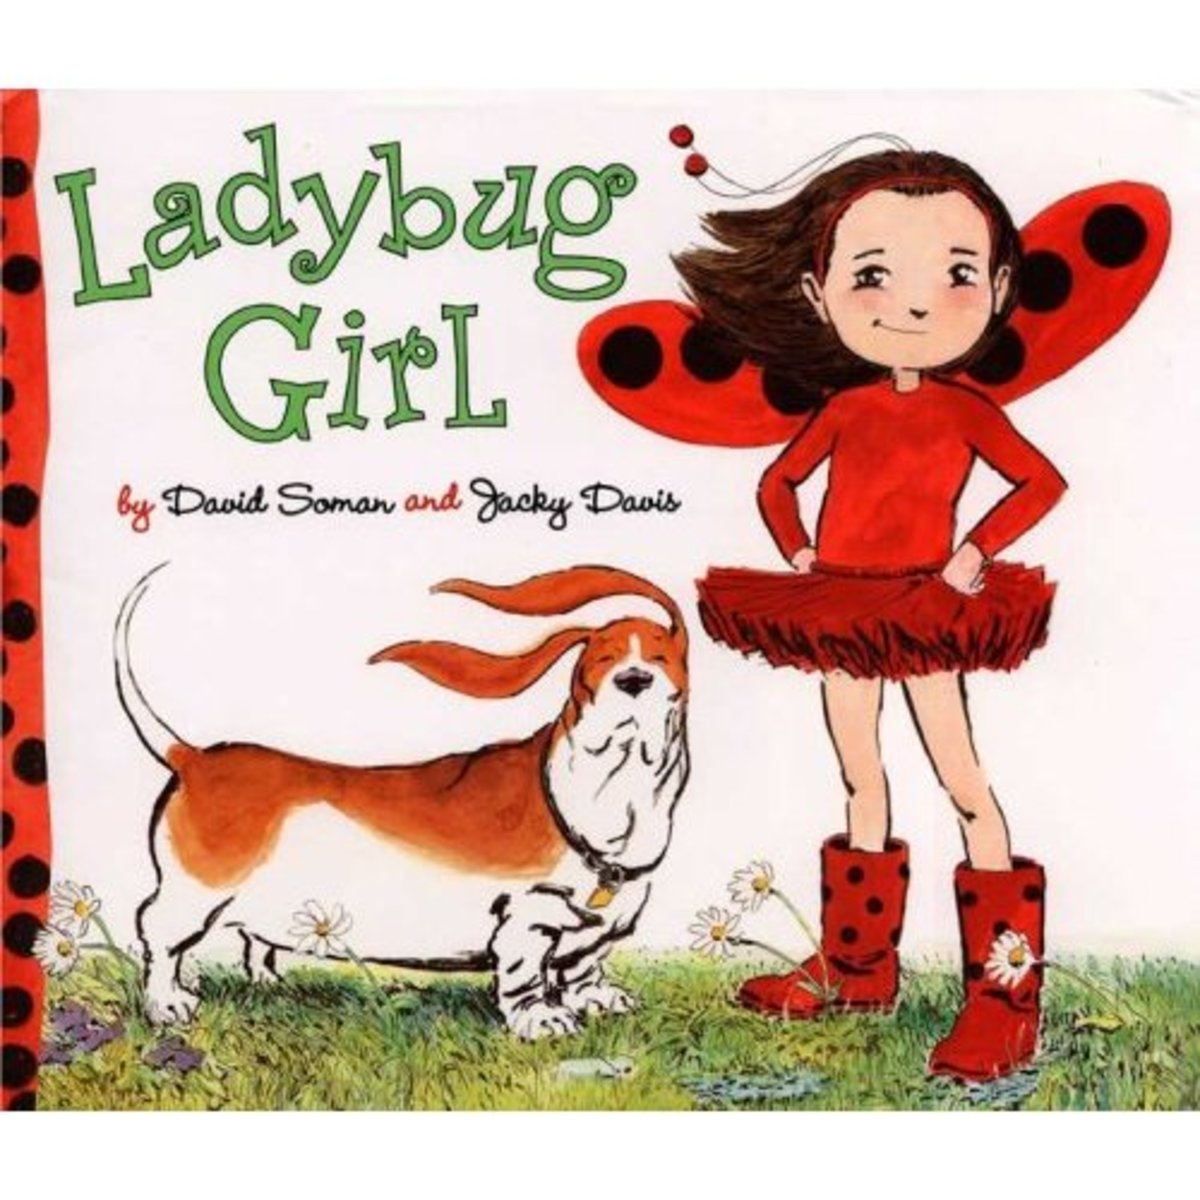 Ladybug Girl by David Soman and Jacky Davis Children's Book Review